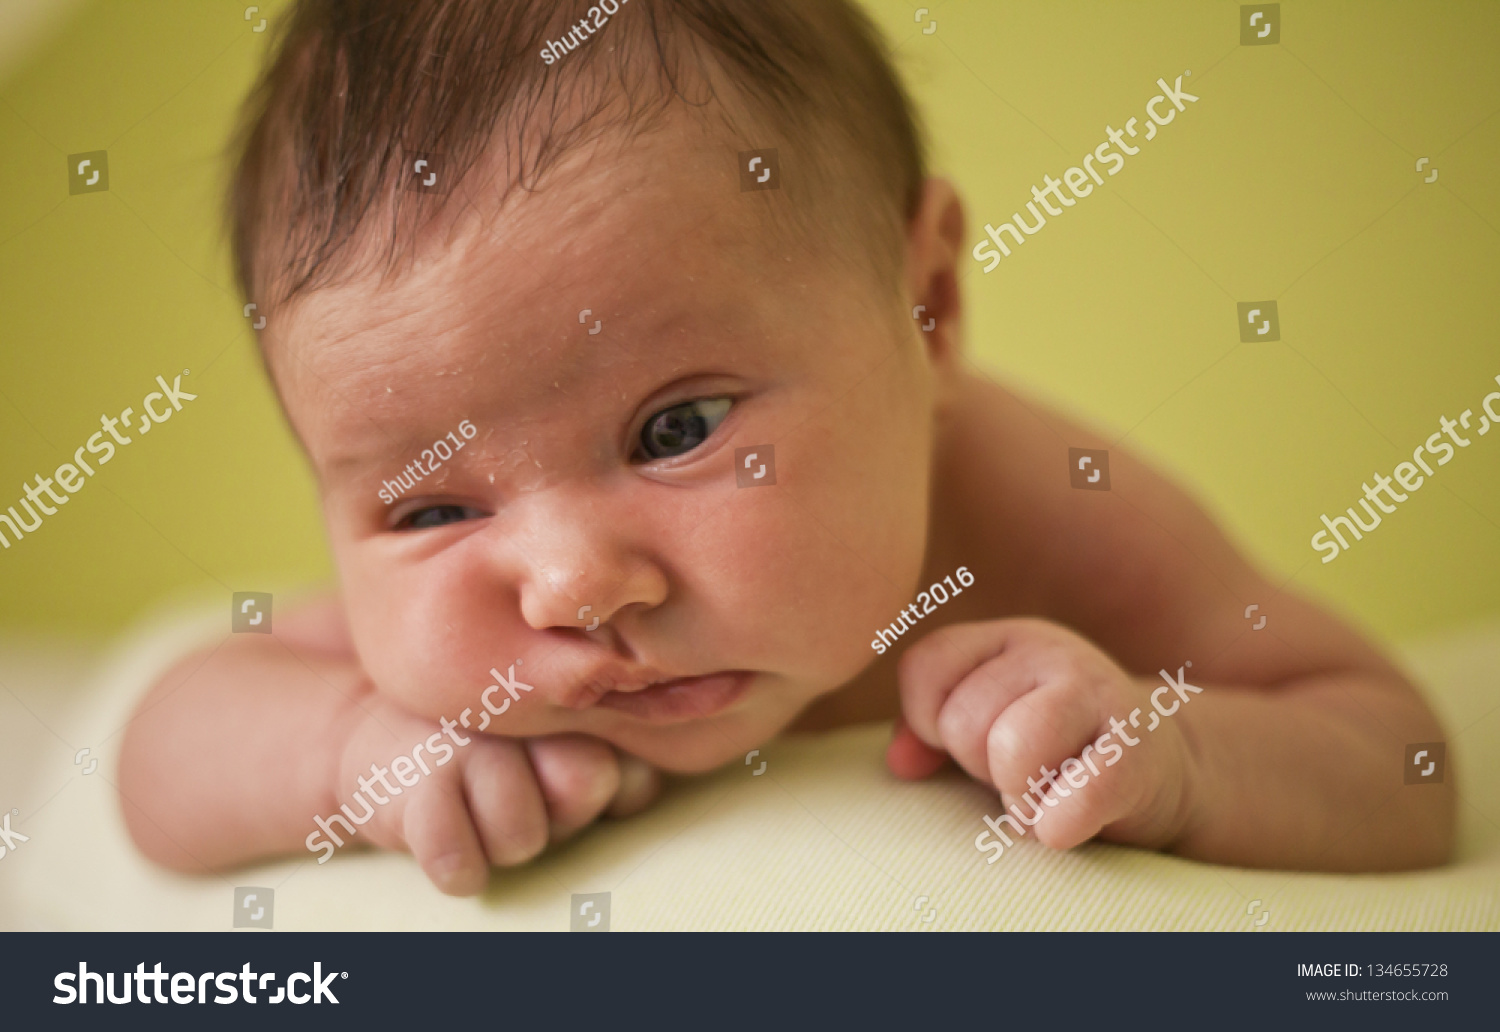 Baby Toddler Boy Girl On Bed Stockfoto 134655728